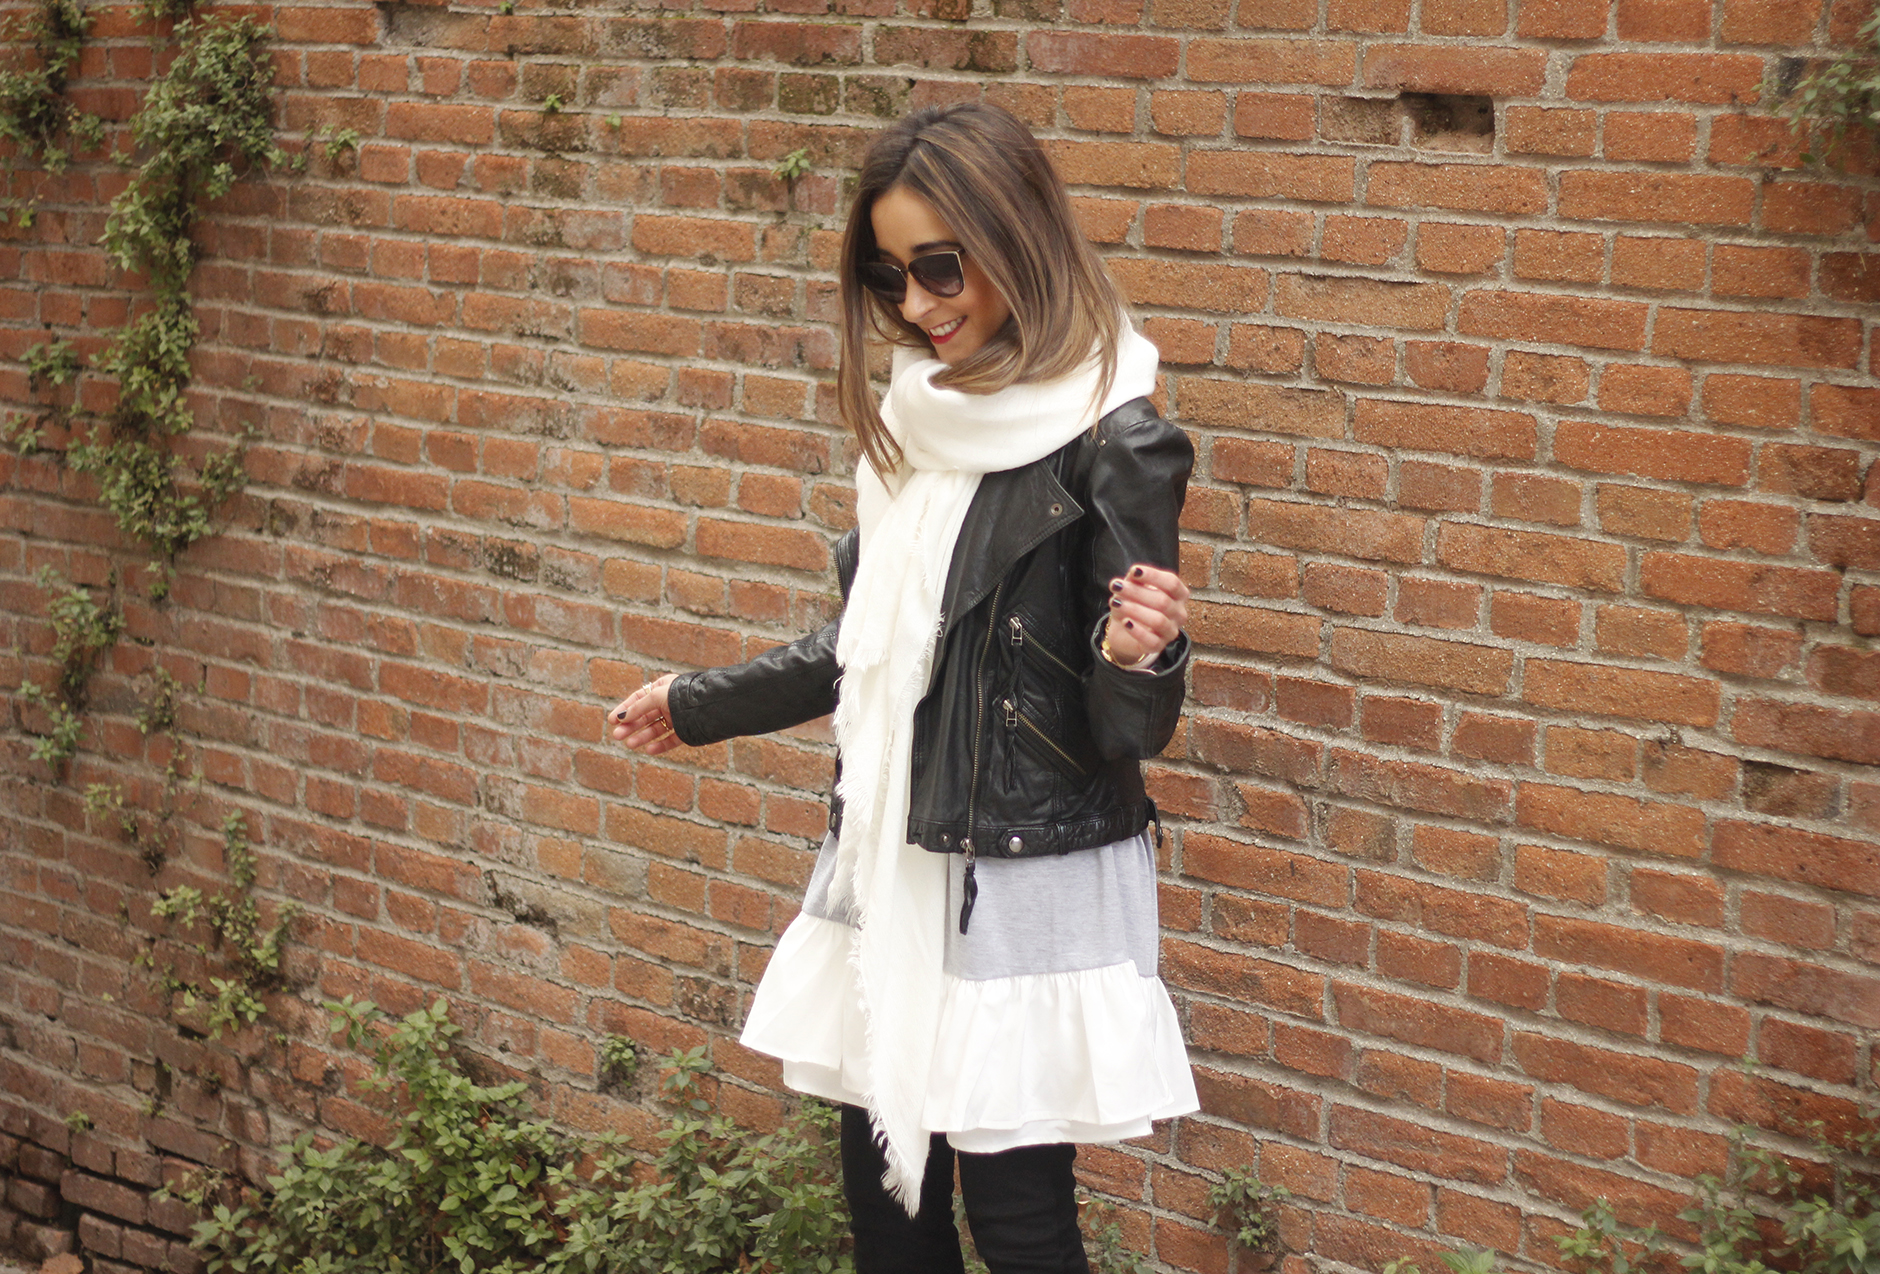 Leather Jacket gray dress over the knee boots style outfit fashion coach bag white scarf07